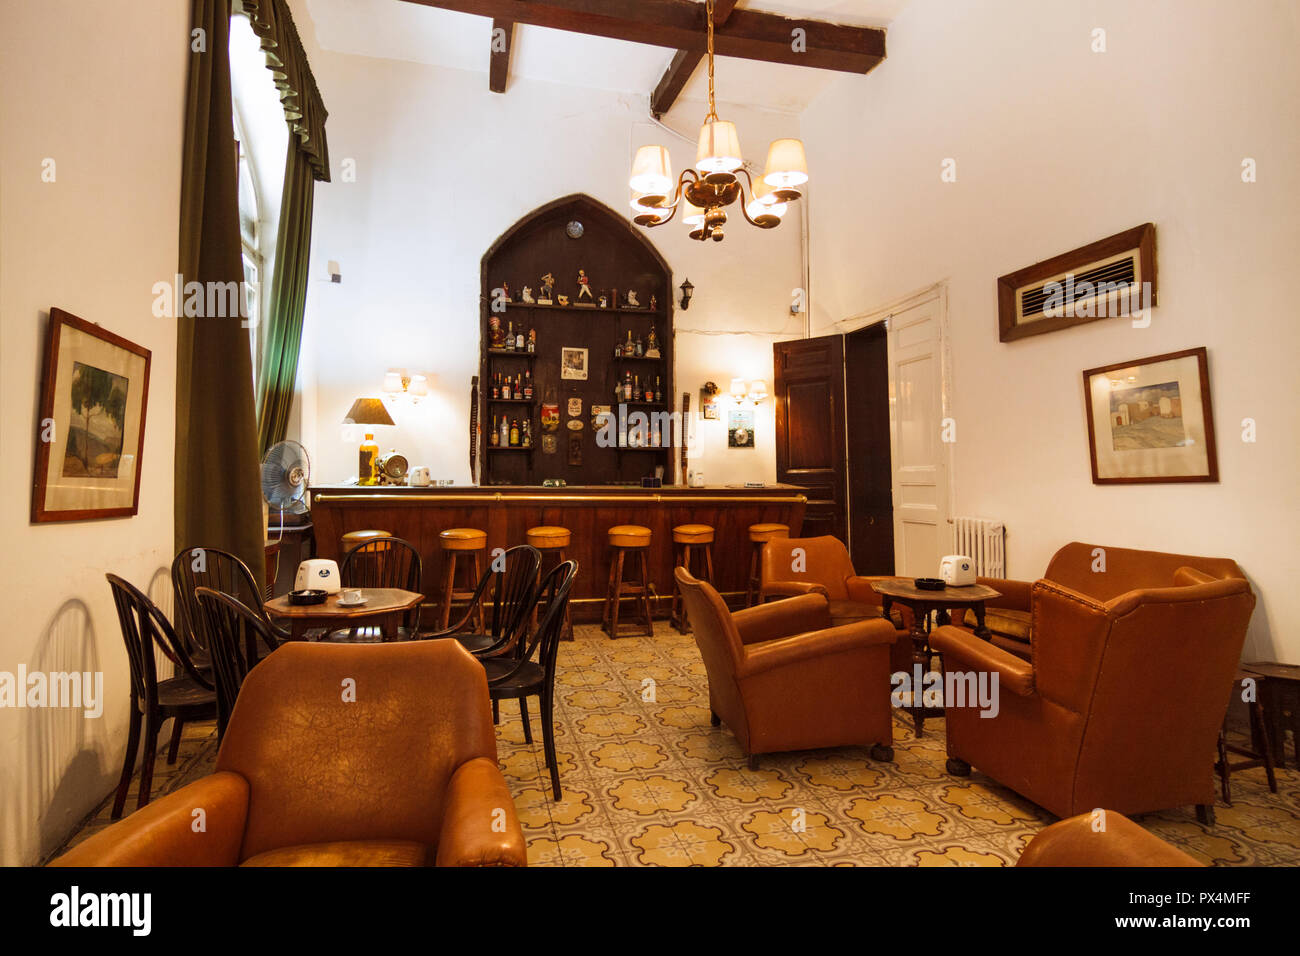 Aleppo, Aleppo Governorate, Syria : Bar of the Baron Hotel. Built betwen 1909 and 1911, the Baron is the oldest operating hotel in Syria. - Stock Image